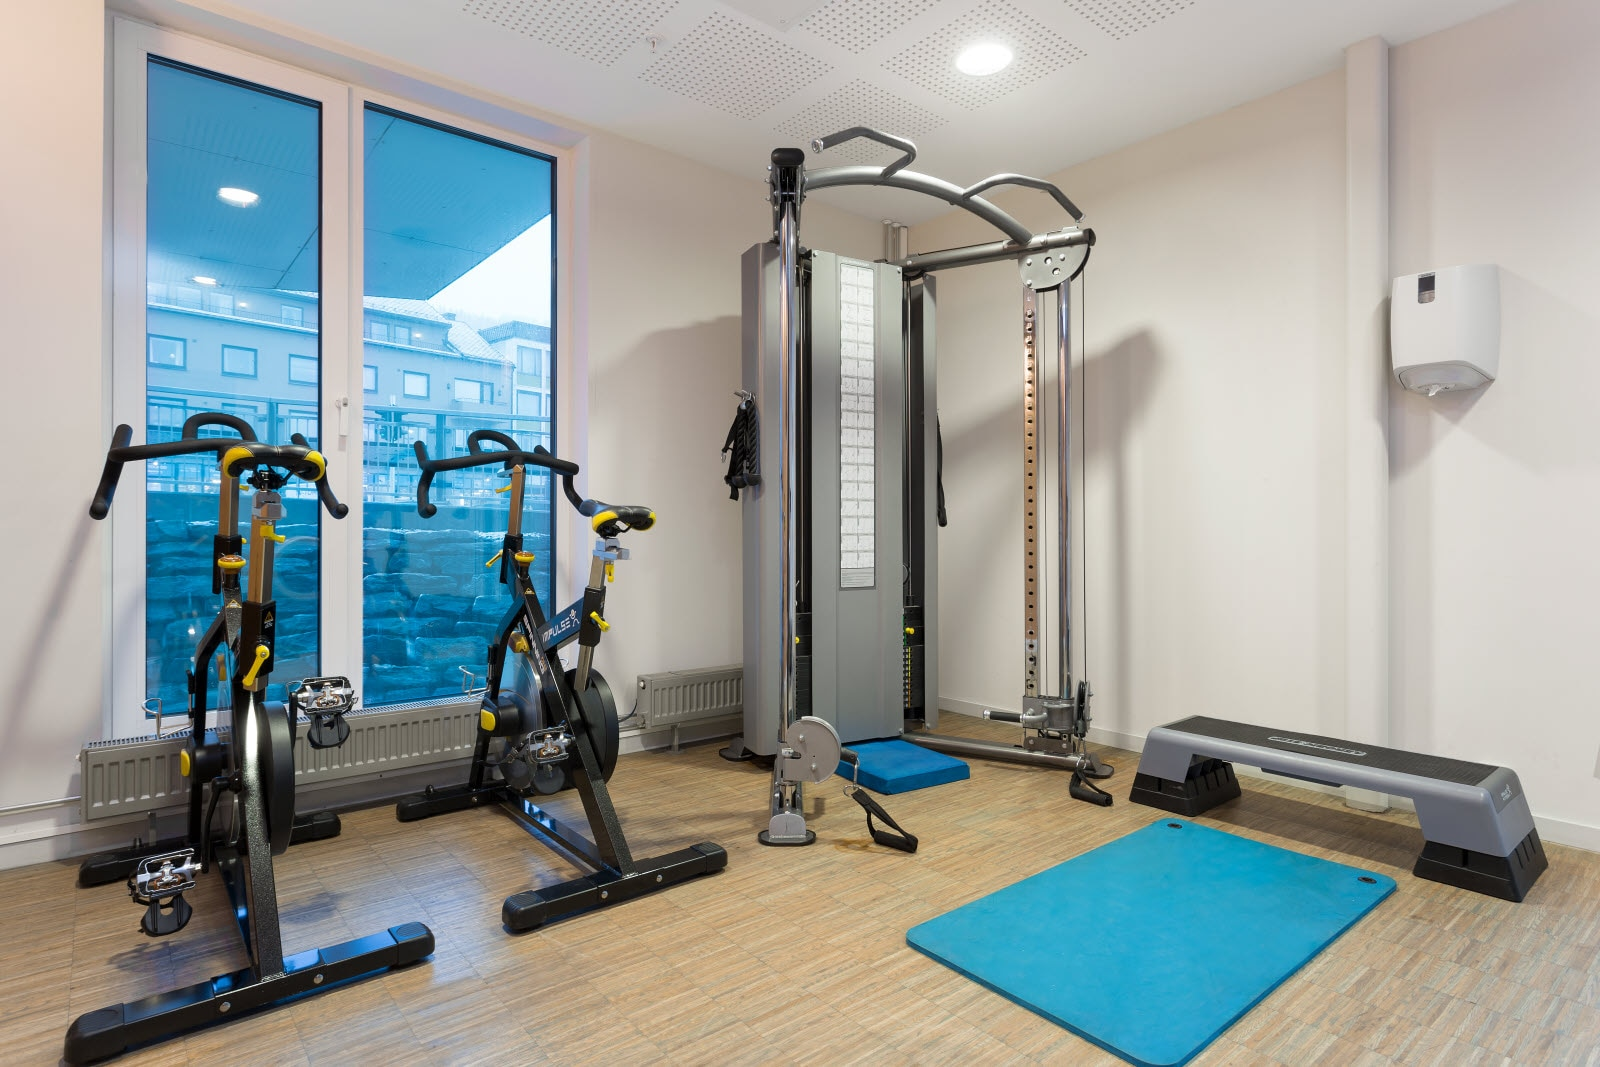 Scandic Narvik, gym